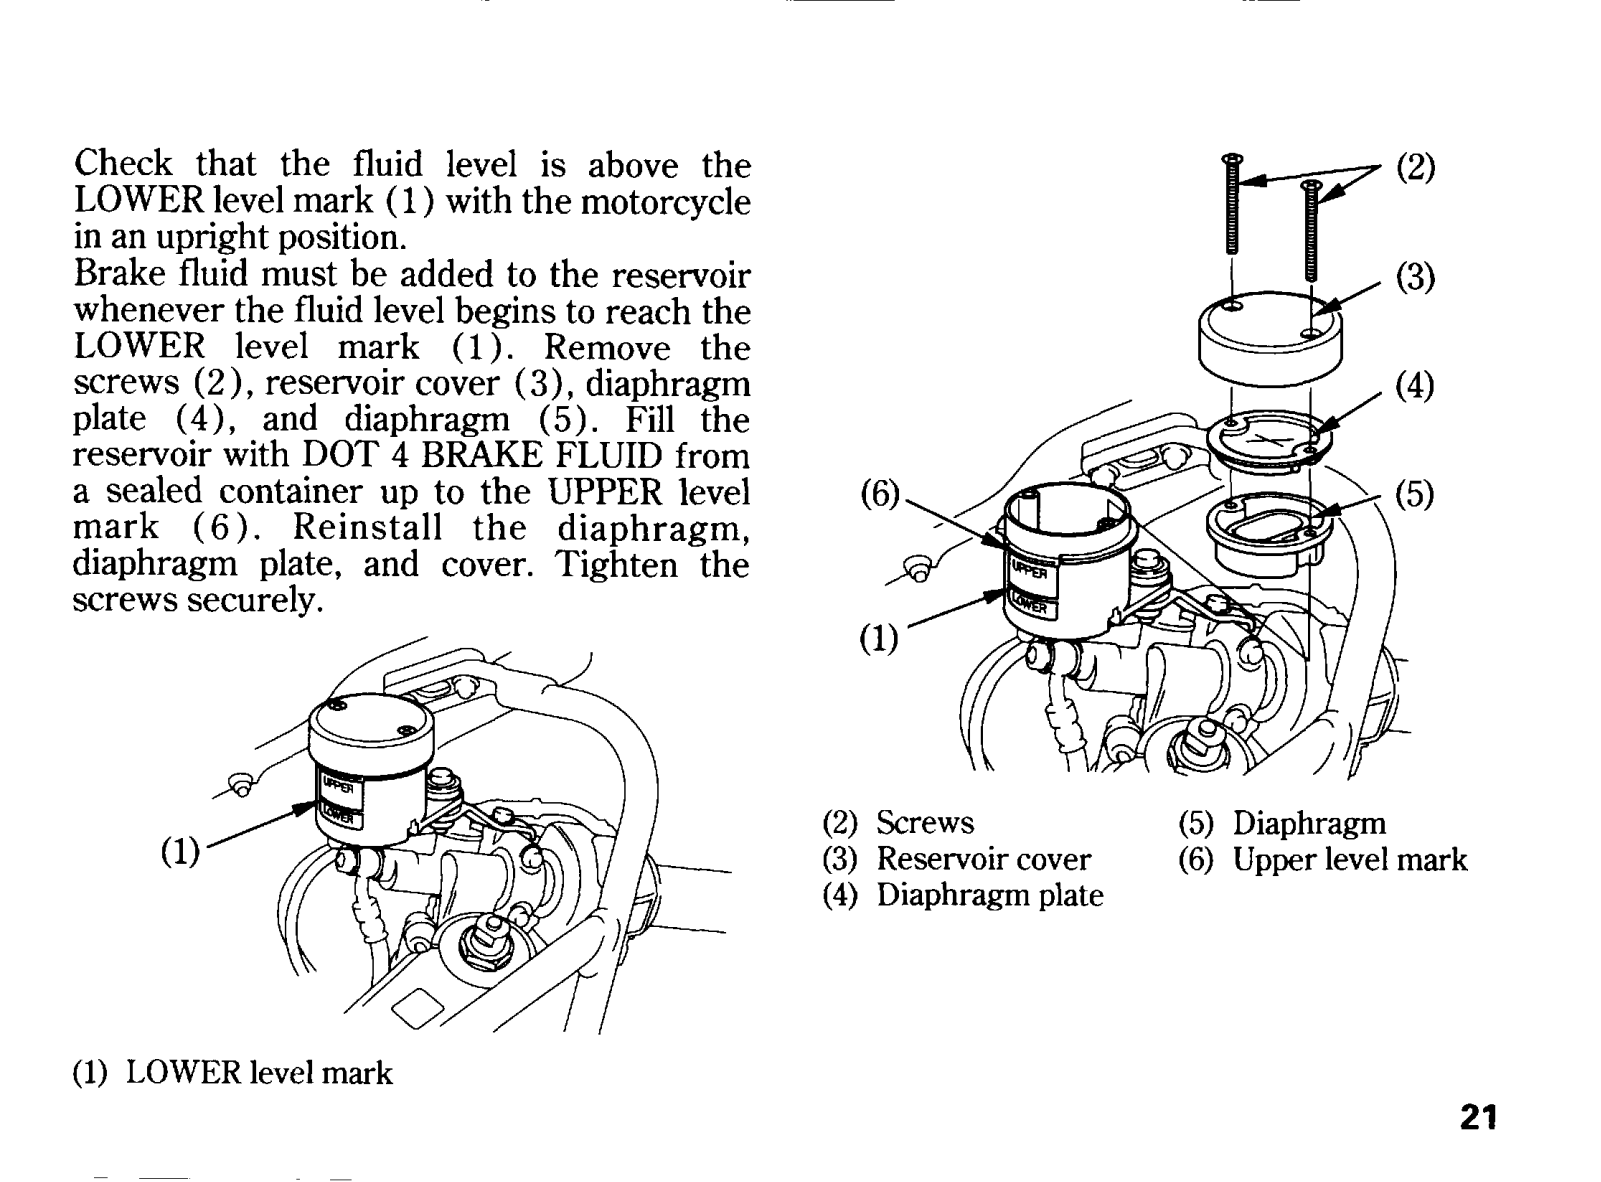 Honda CBR900RRW/FIRE/BLADE Owner's Manual